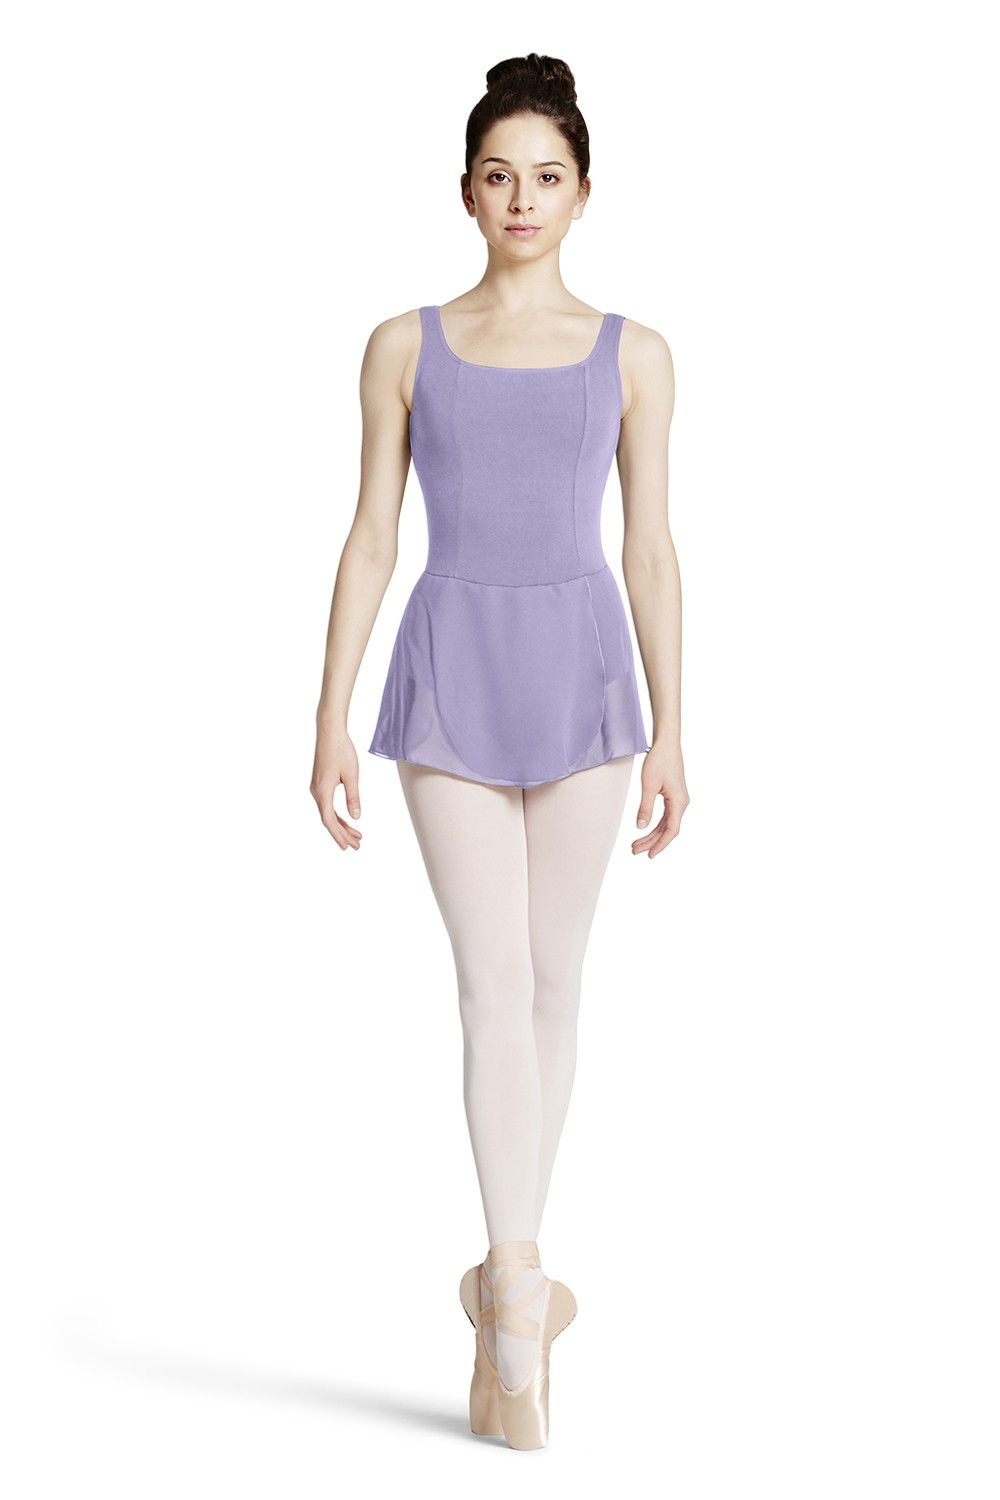 Skirted Tank Leotard Women's Dance Leotards